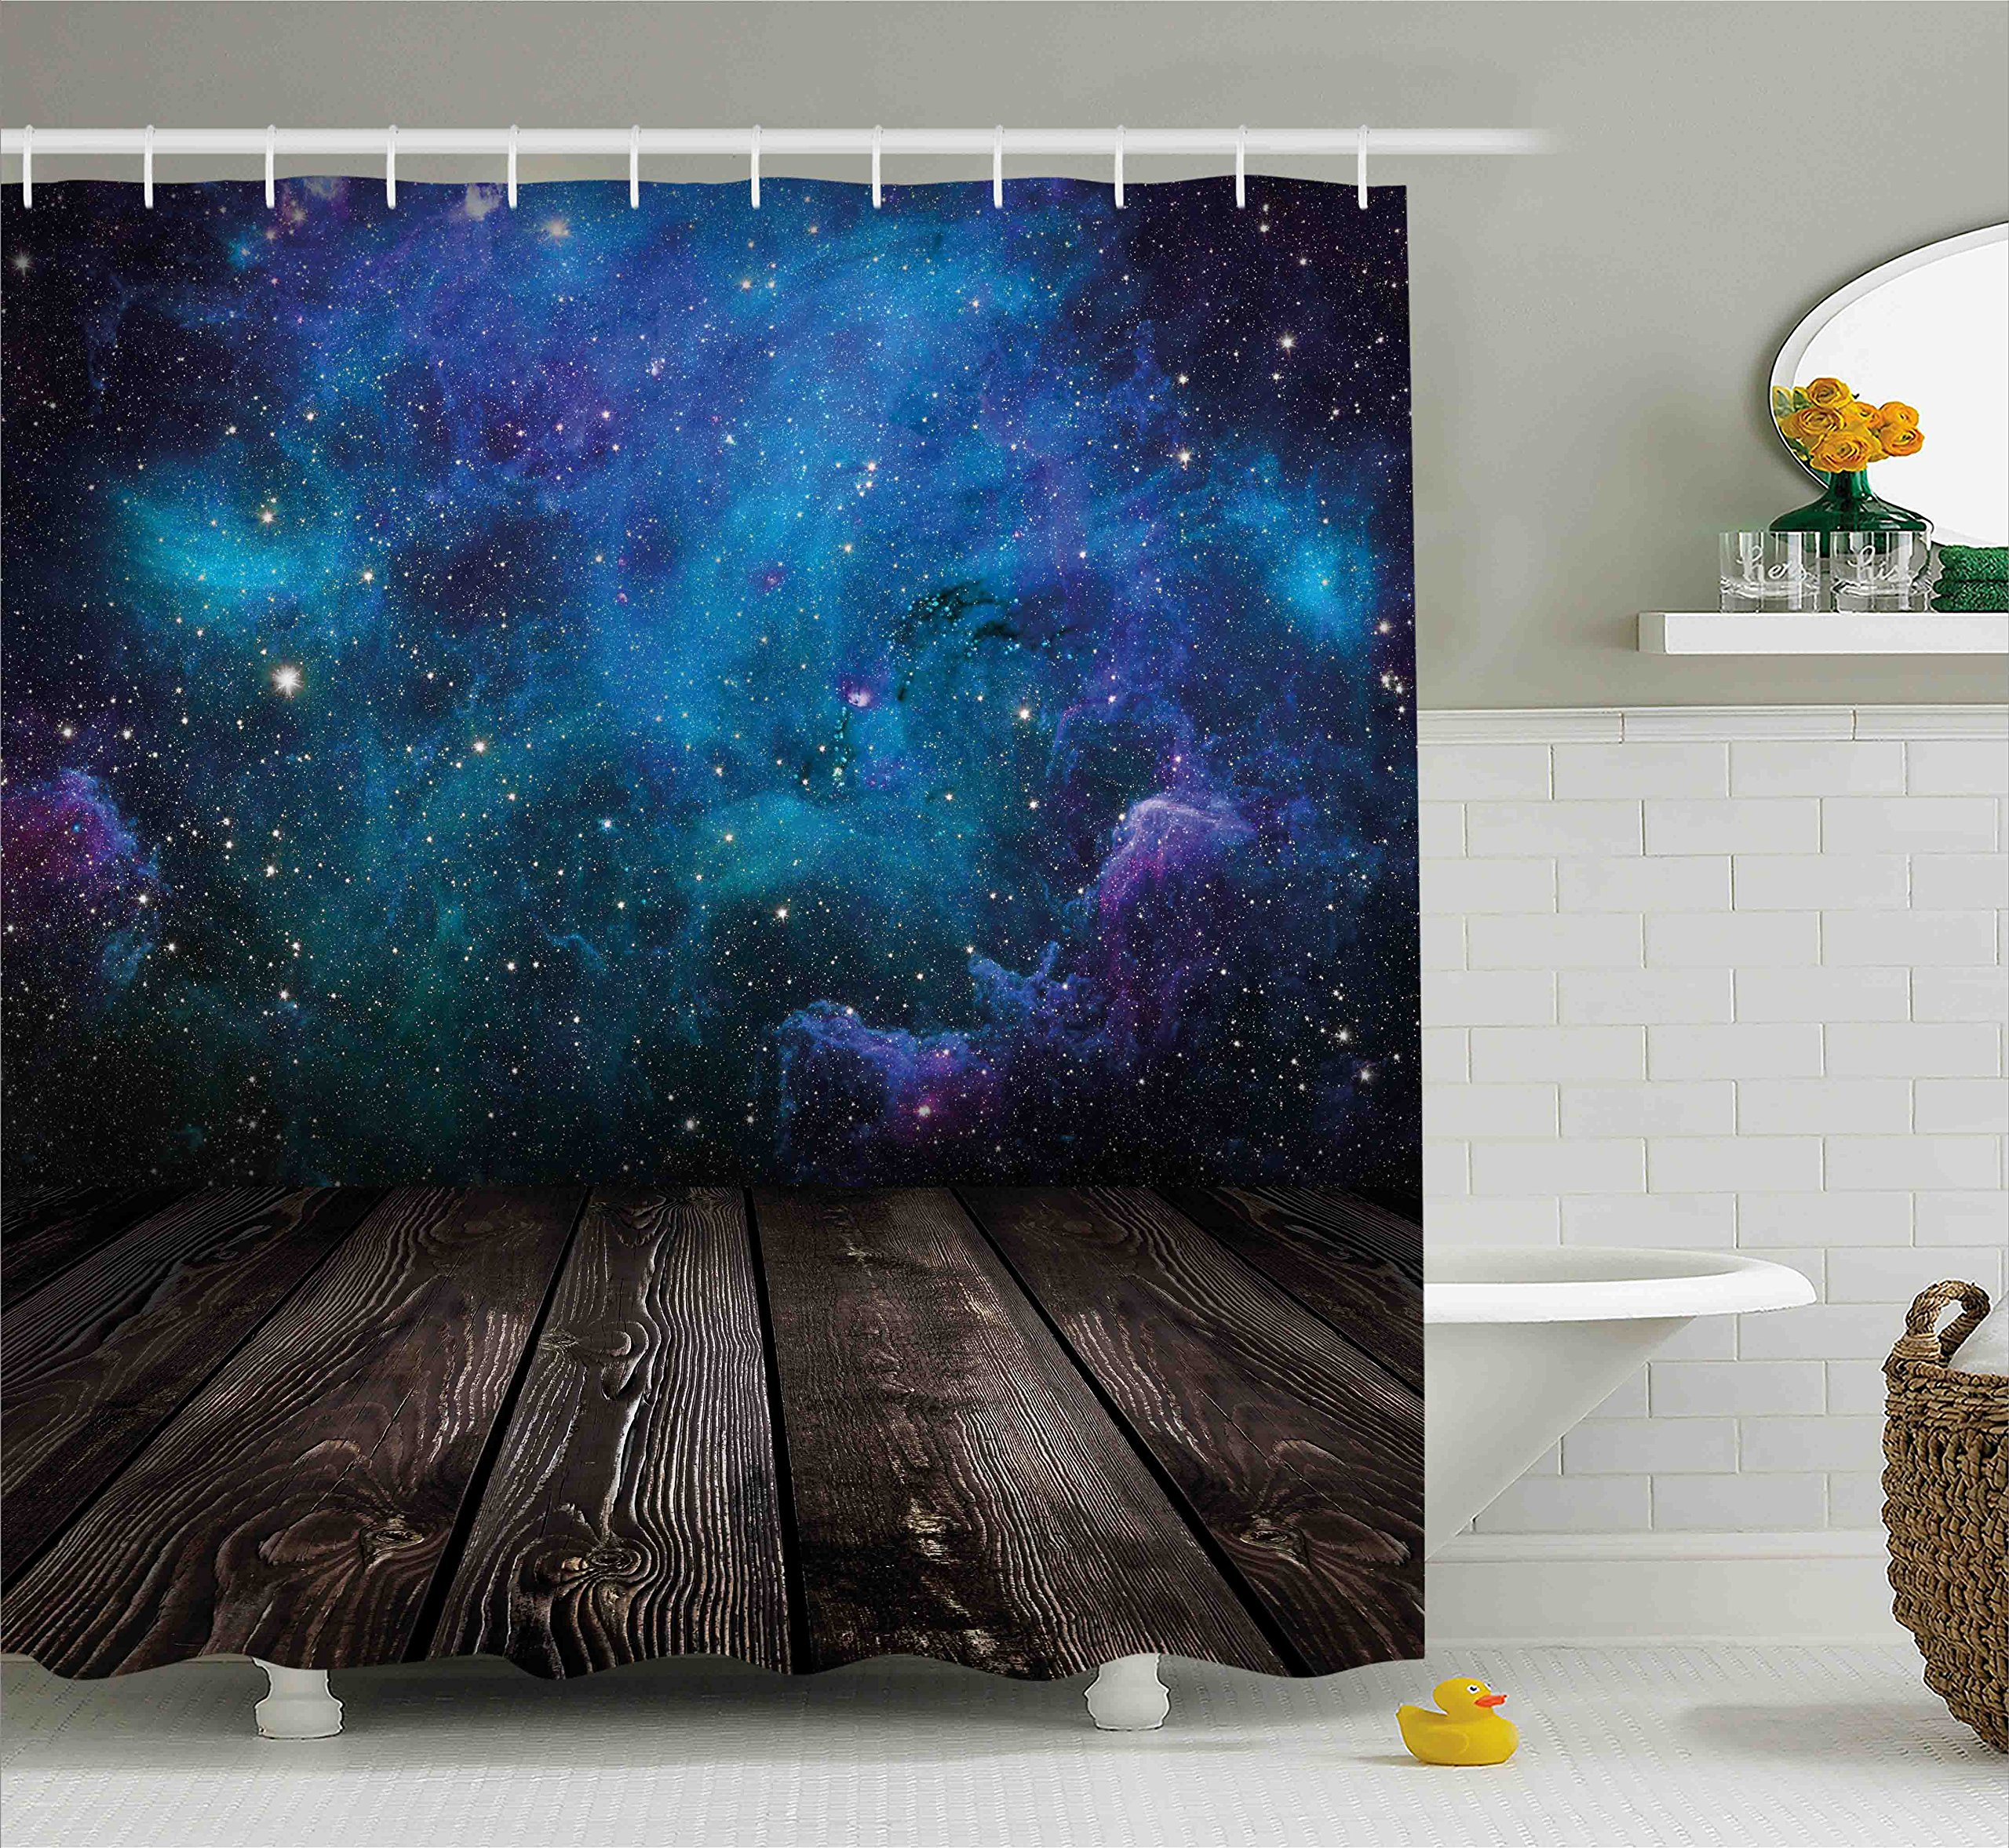 Ambesonne Galaxy Shower Curtain, Outer Space View from Rustic Wooden Deck of Blue Nebula Stars Magical Night Image, Fabric Bathroom Decor with Hooks, 75 inches Long, Black Blue Brown Purple